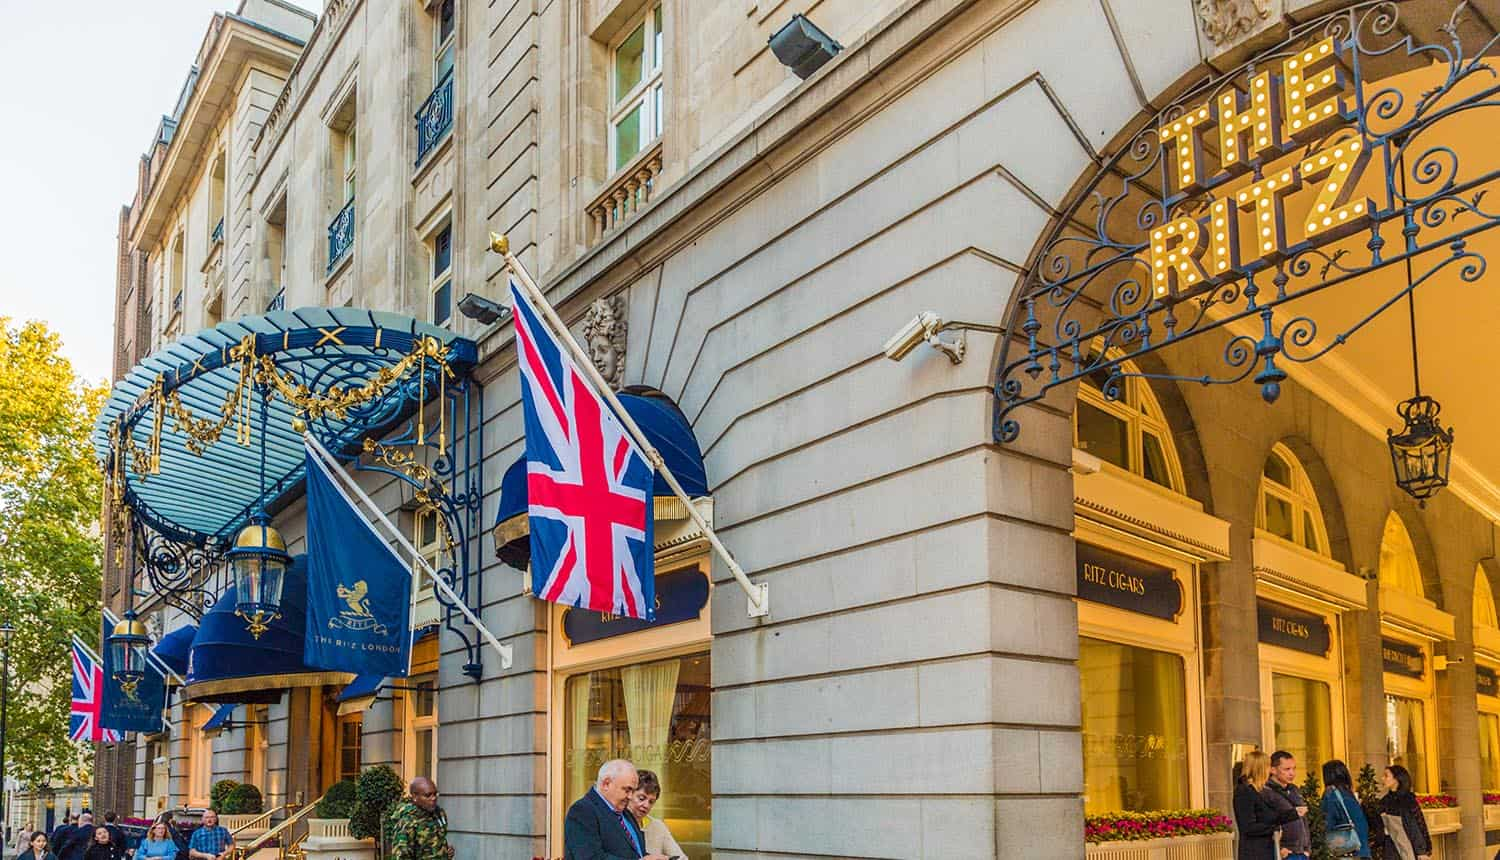 Ritz hotel in London showing data breach that allowed credit card fraud